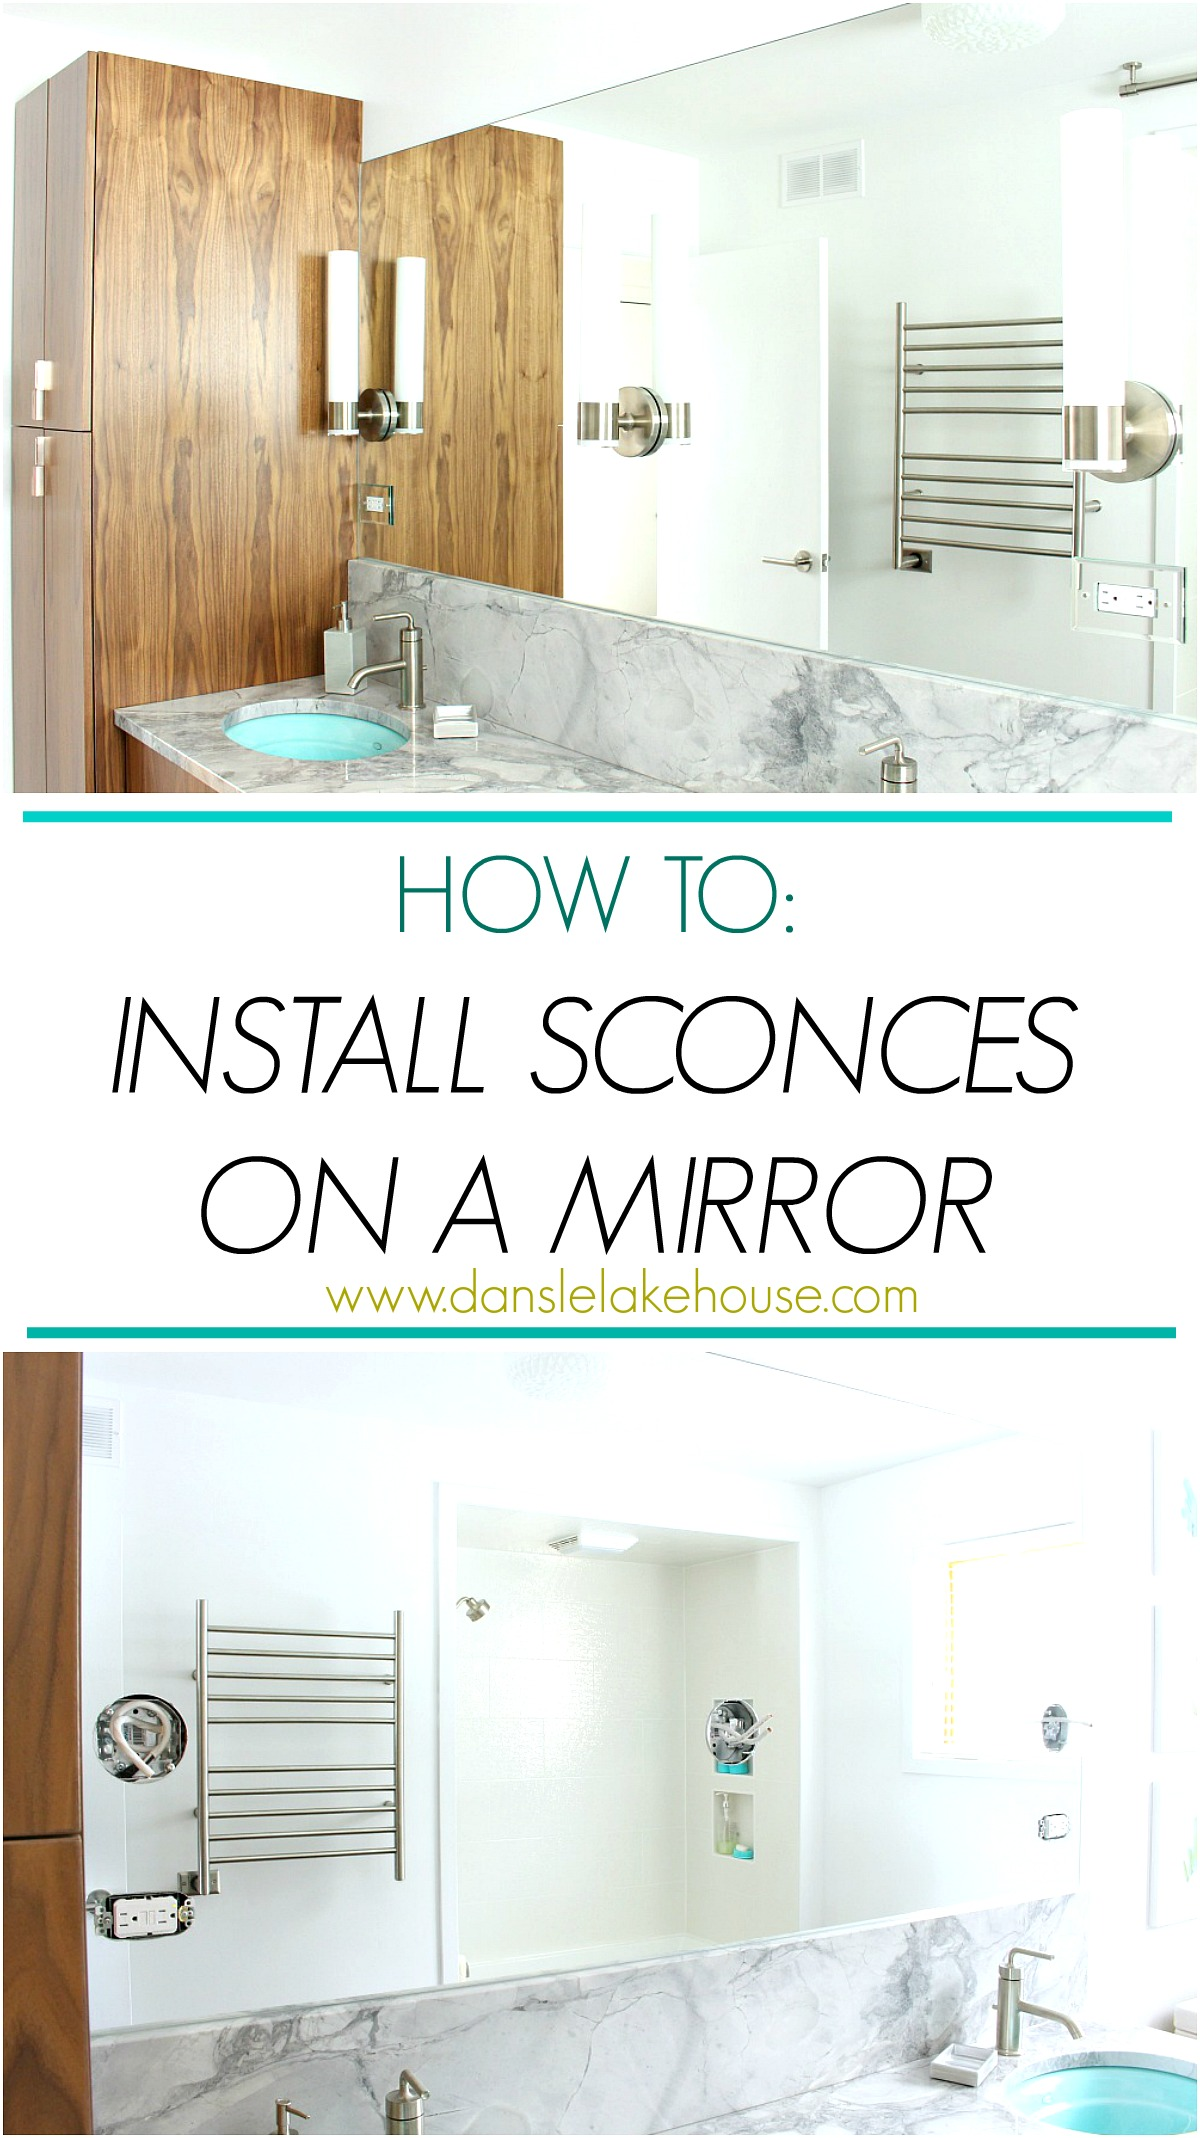 How to install sconces on a mirror - small bathroom hack! Catch other bathroom renovation ideas on Dans le Lakehouse